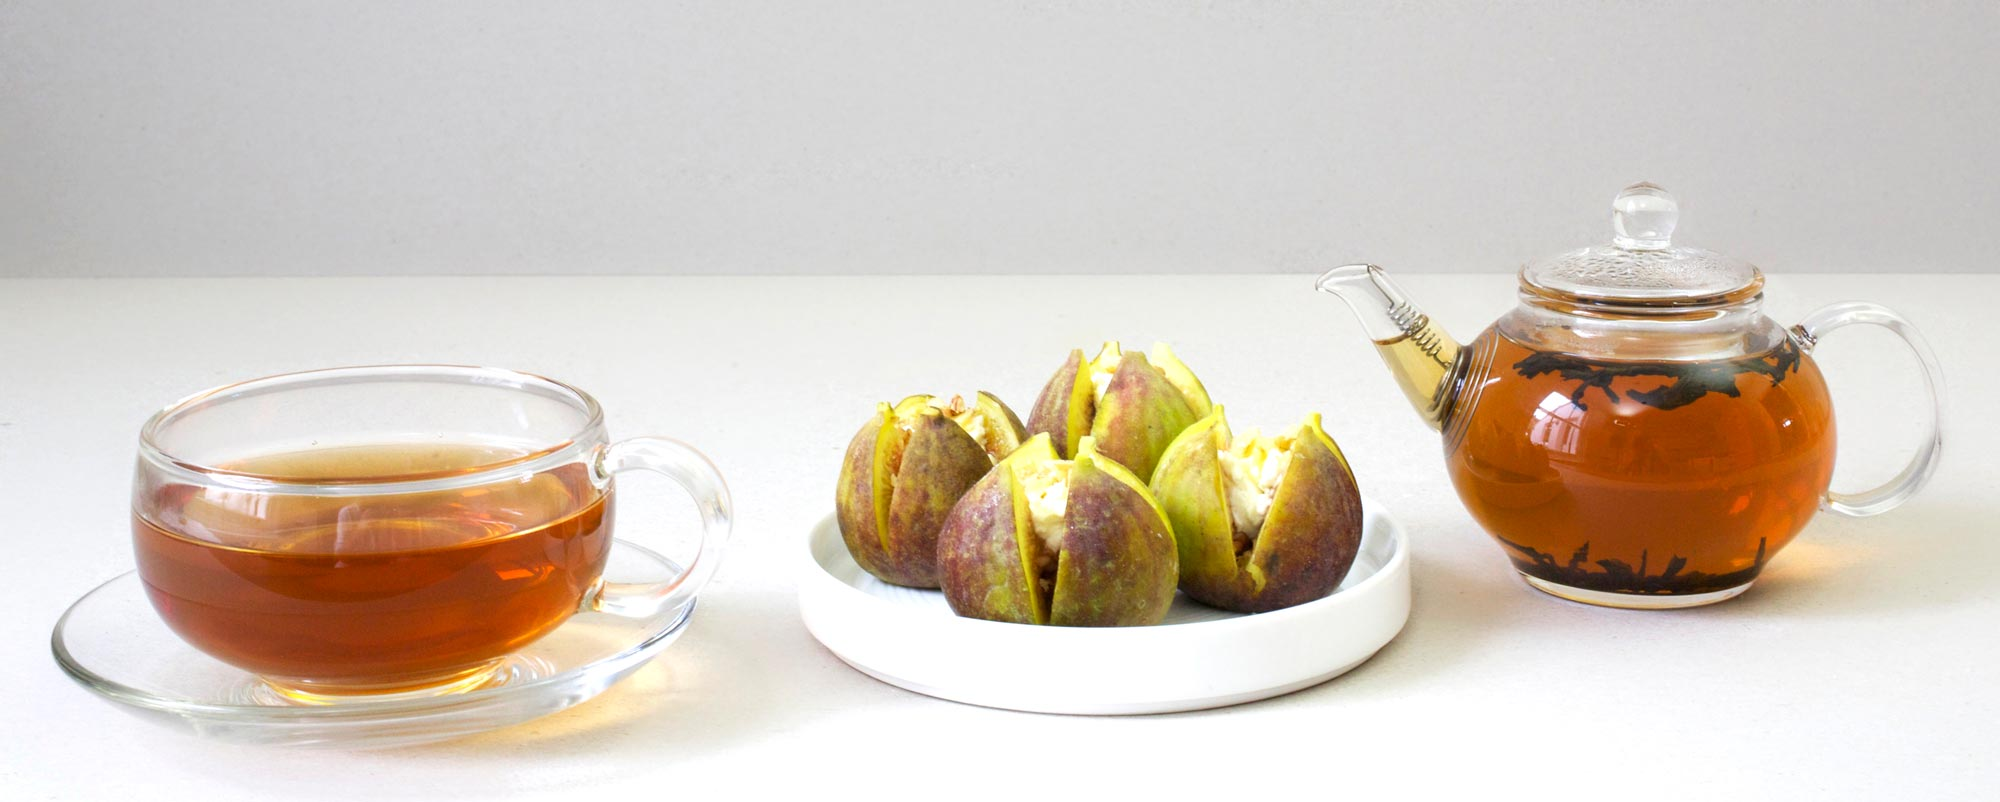 Dish of fresh figs with glass teapot set